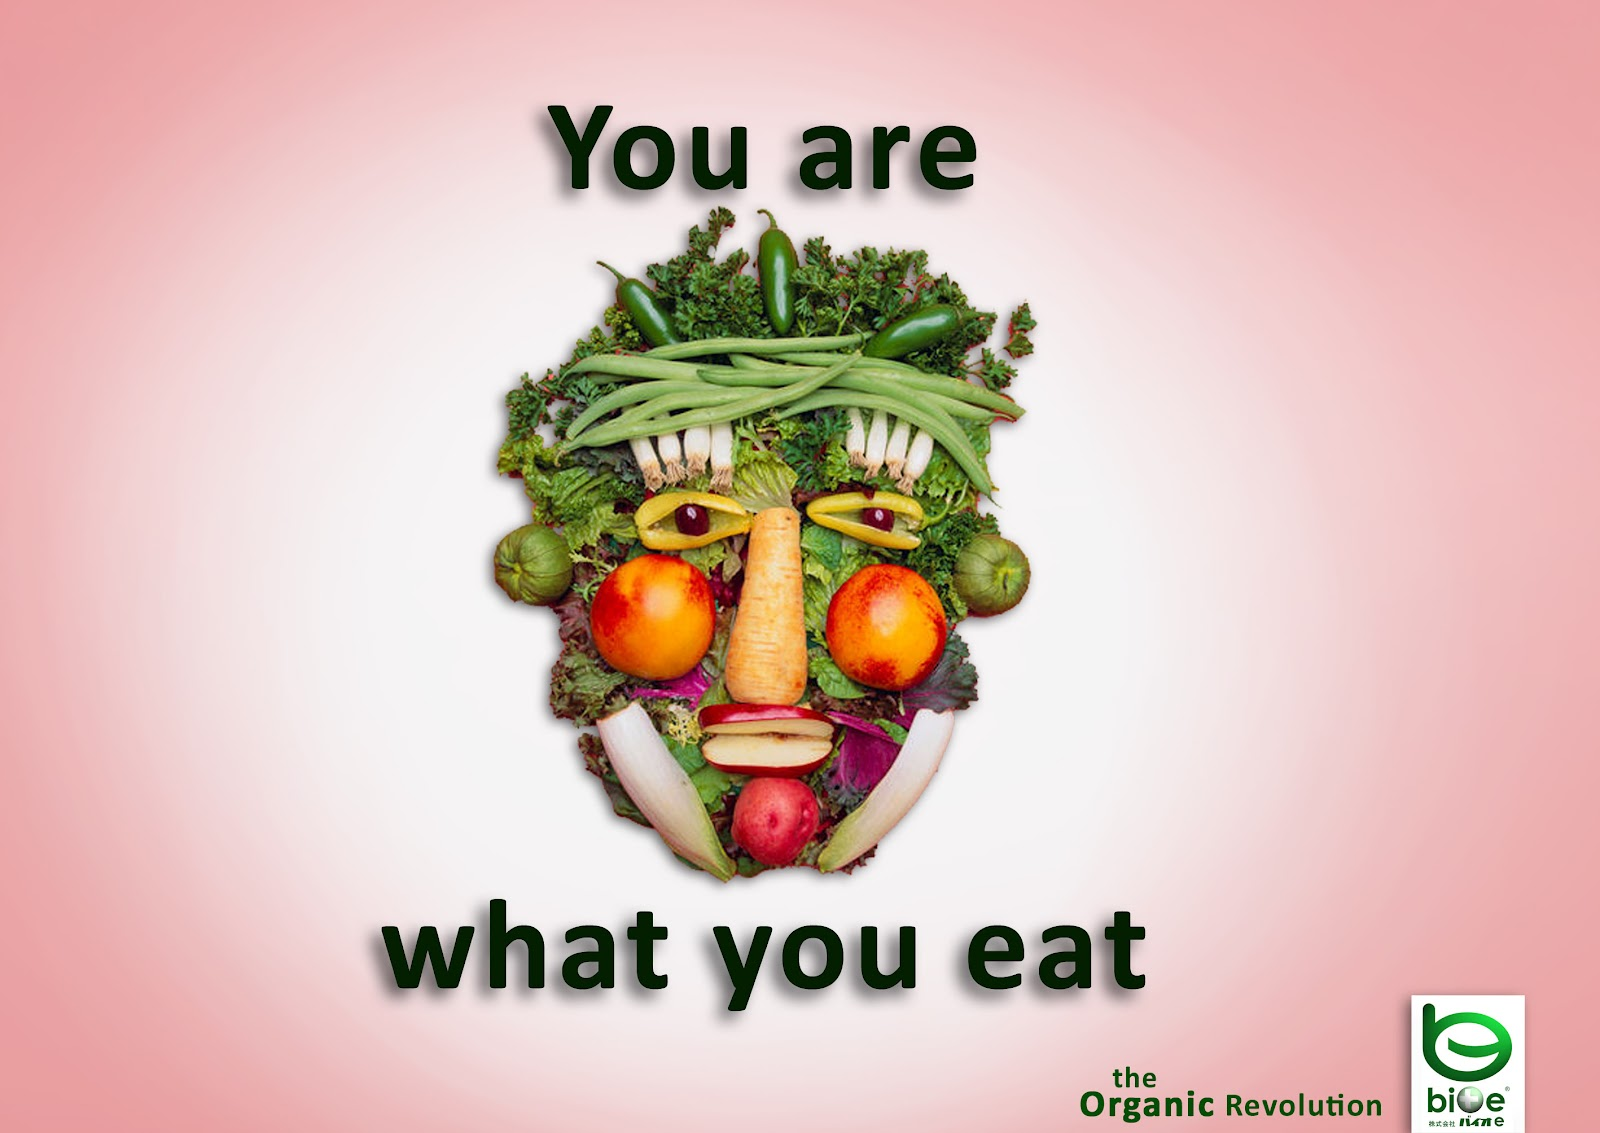 if you are what you eat